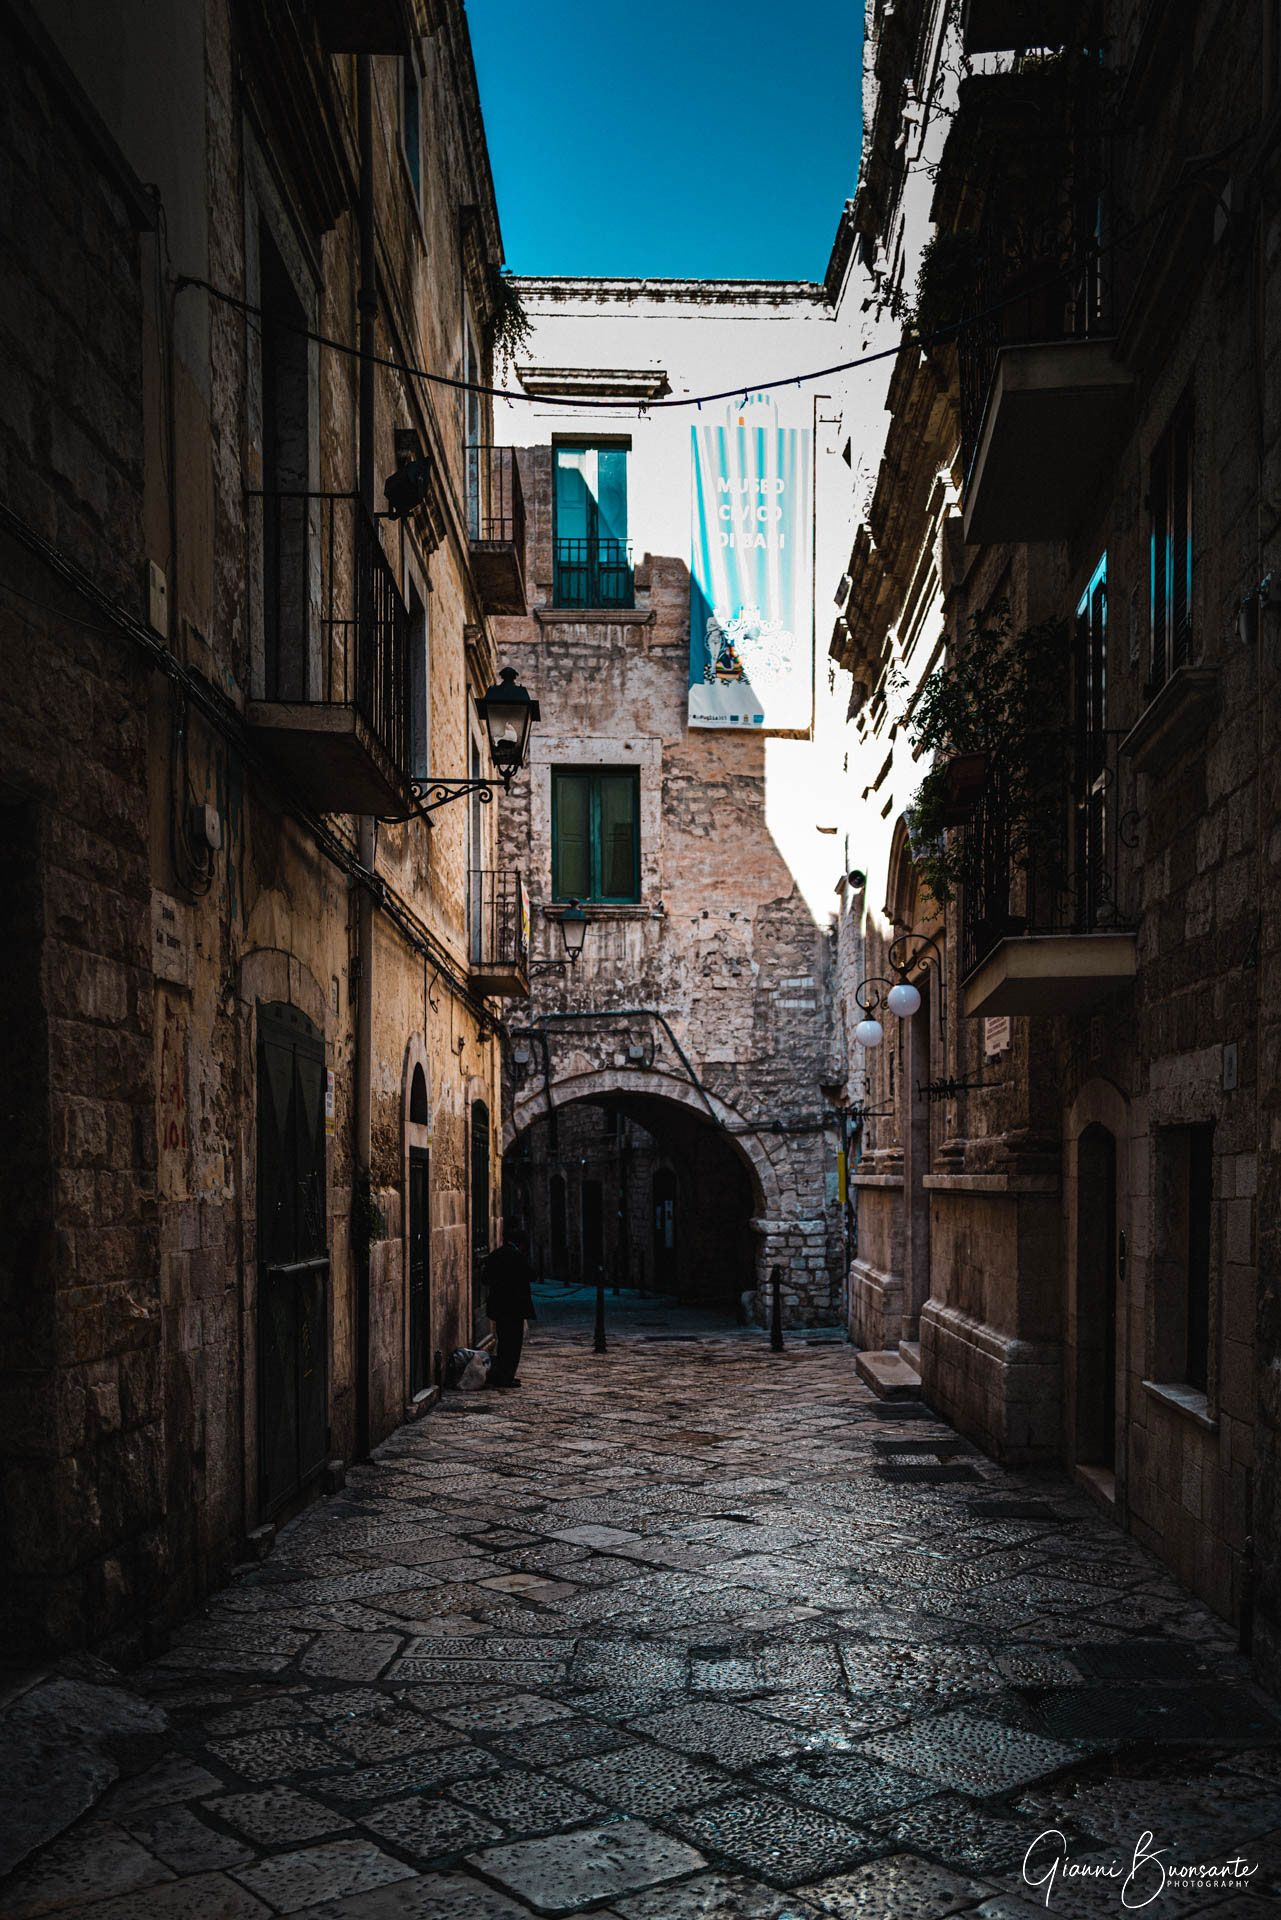 Street photographer in Bari, Puglia, Italy